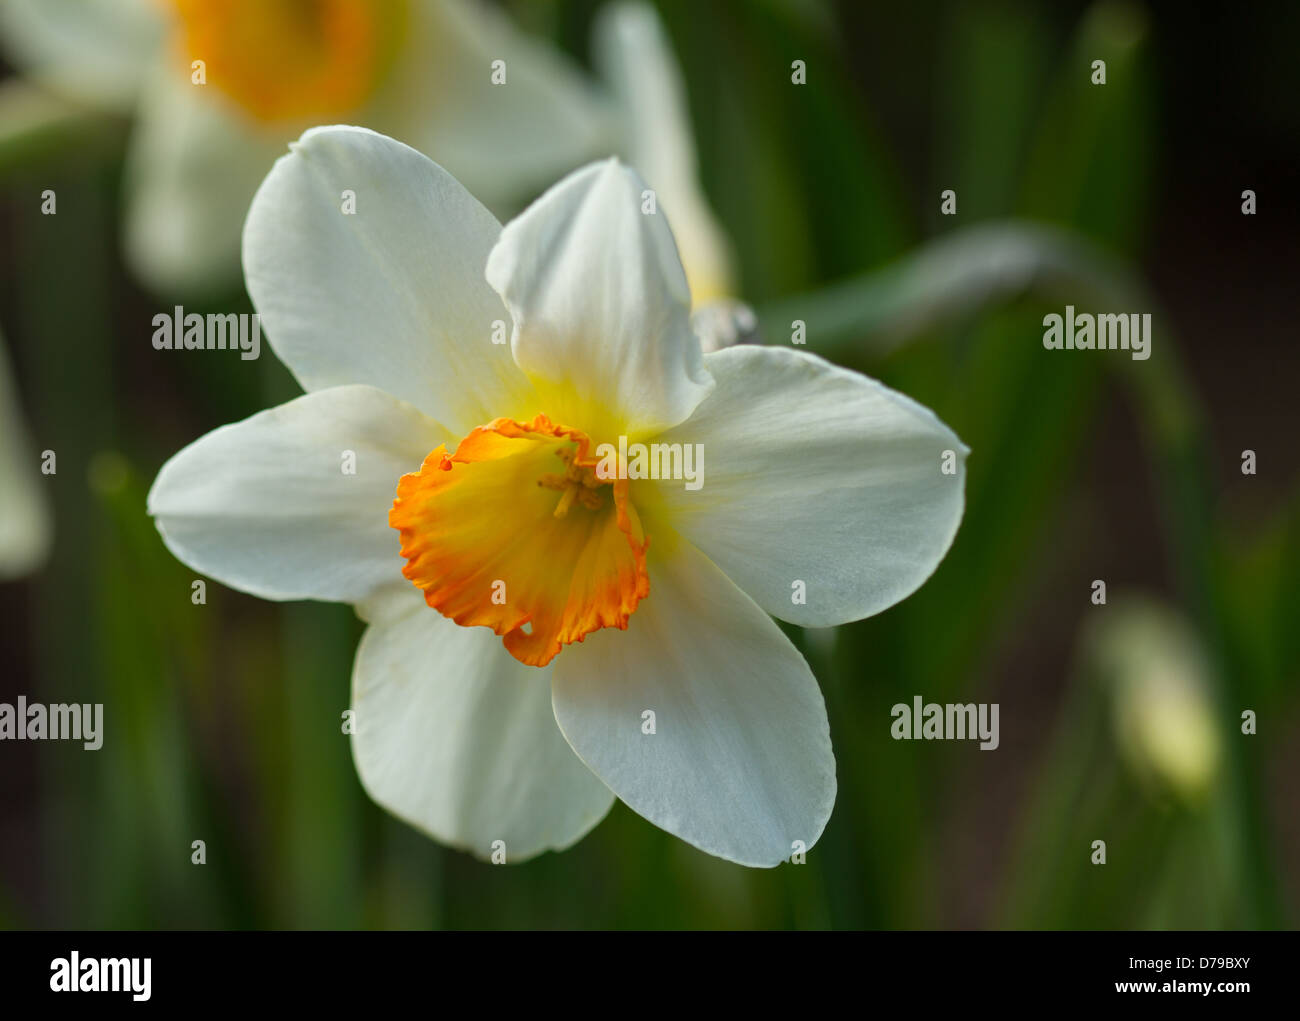 Orange and white narcissus jonquil daffodil flowers stock photo orange and white narcissus jonquil daffodil flowers mightylinksfo